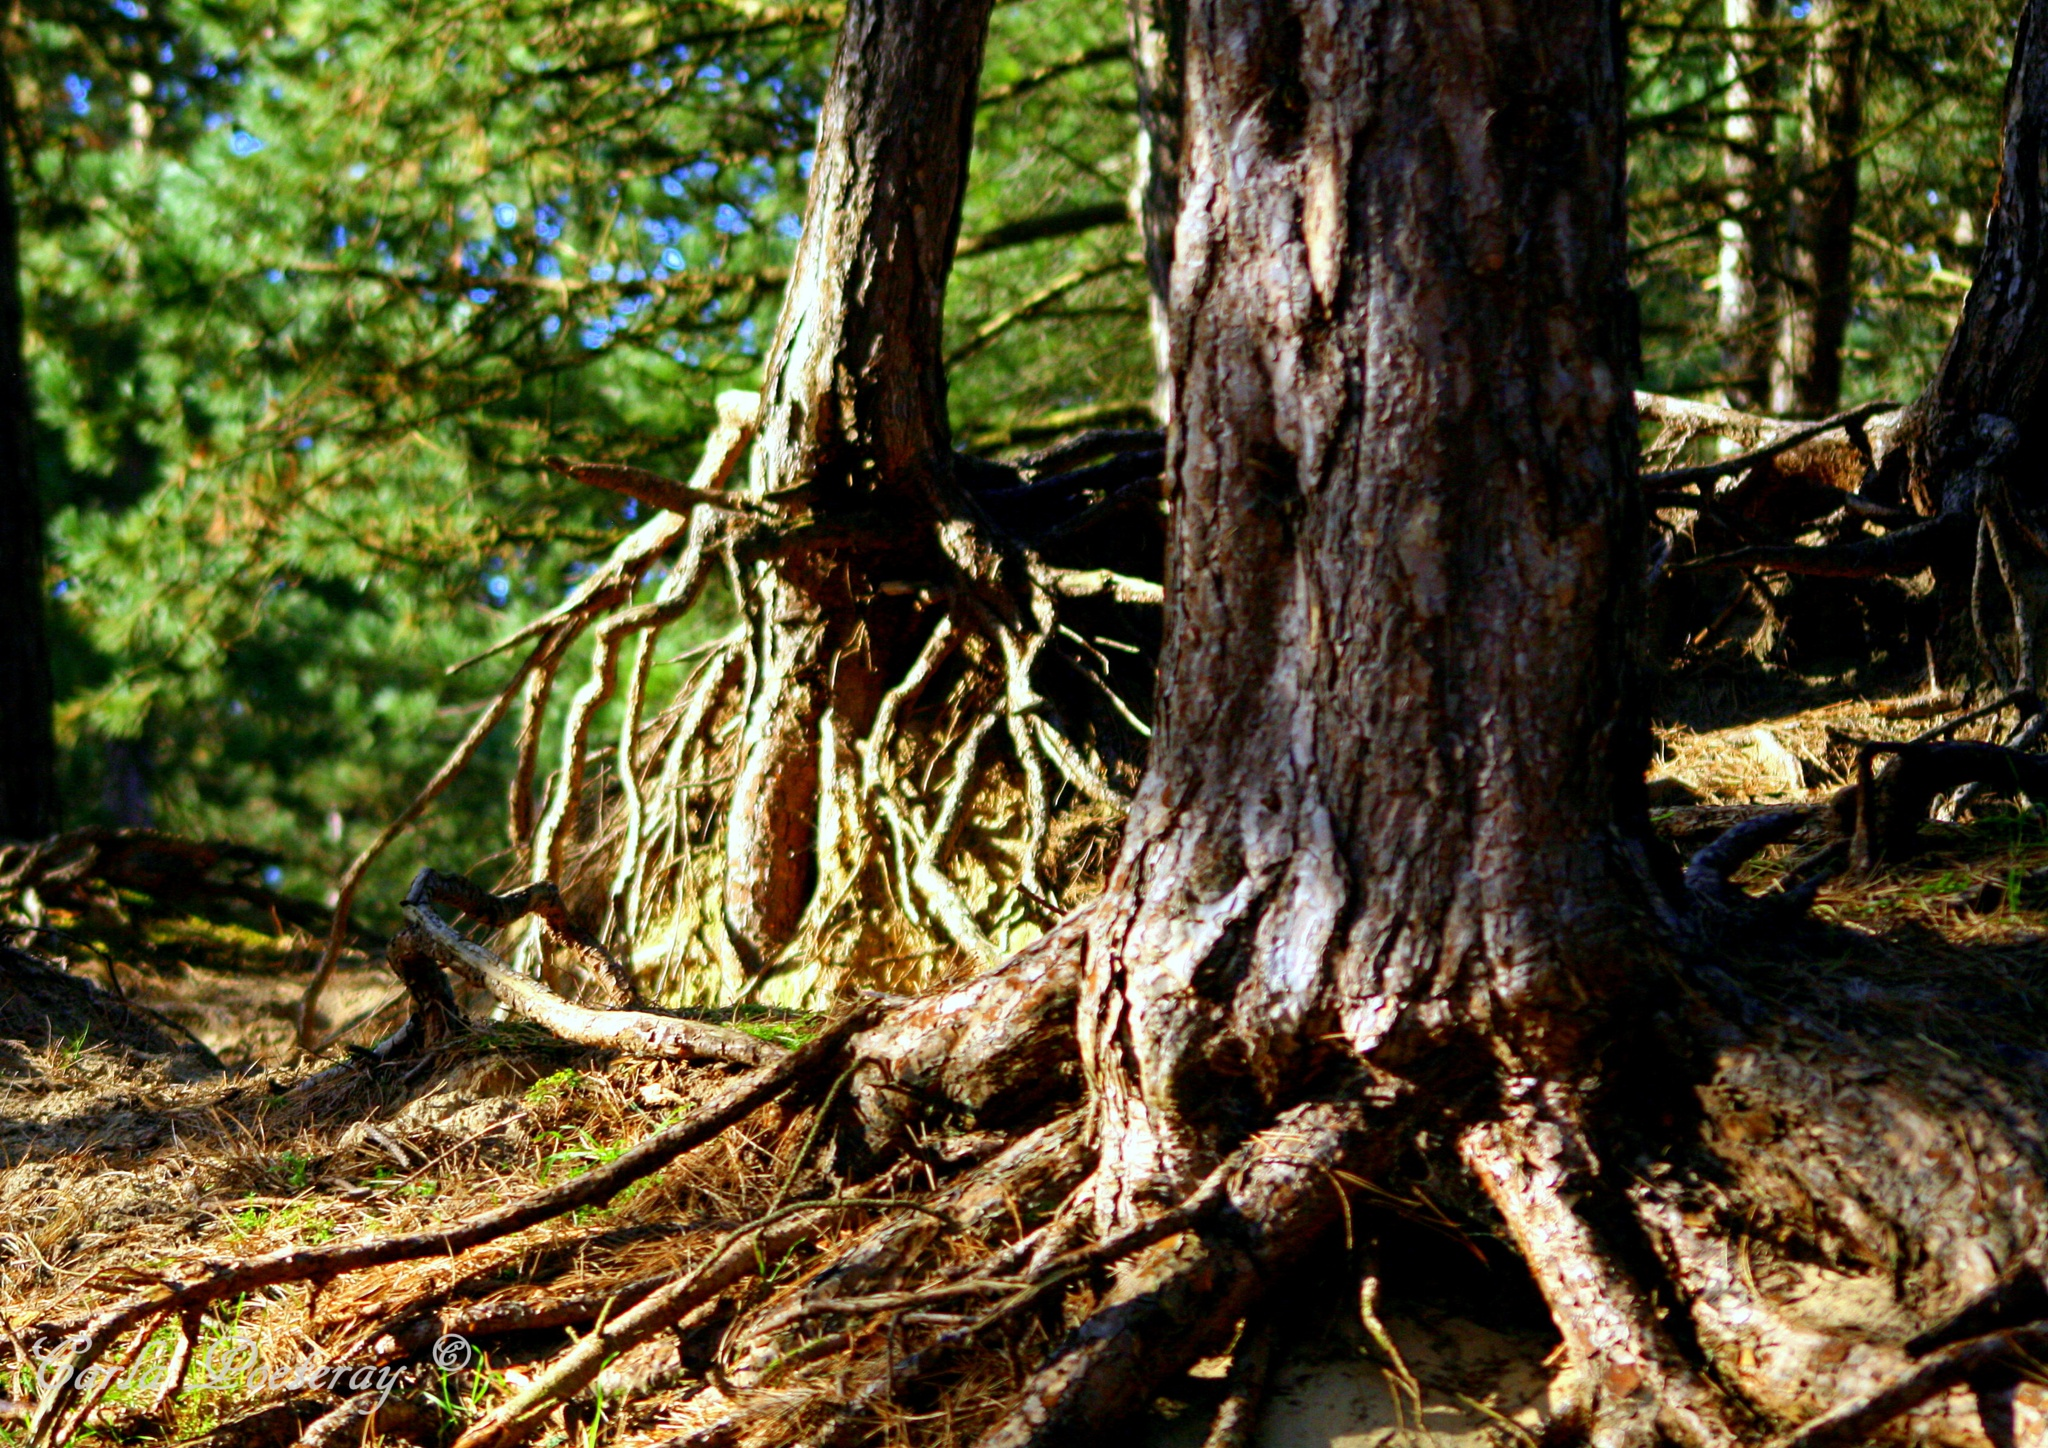 Roots by Cipo366